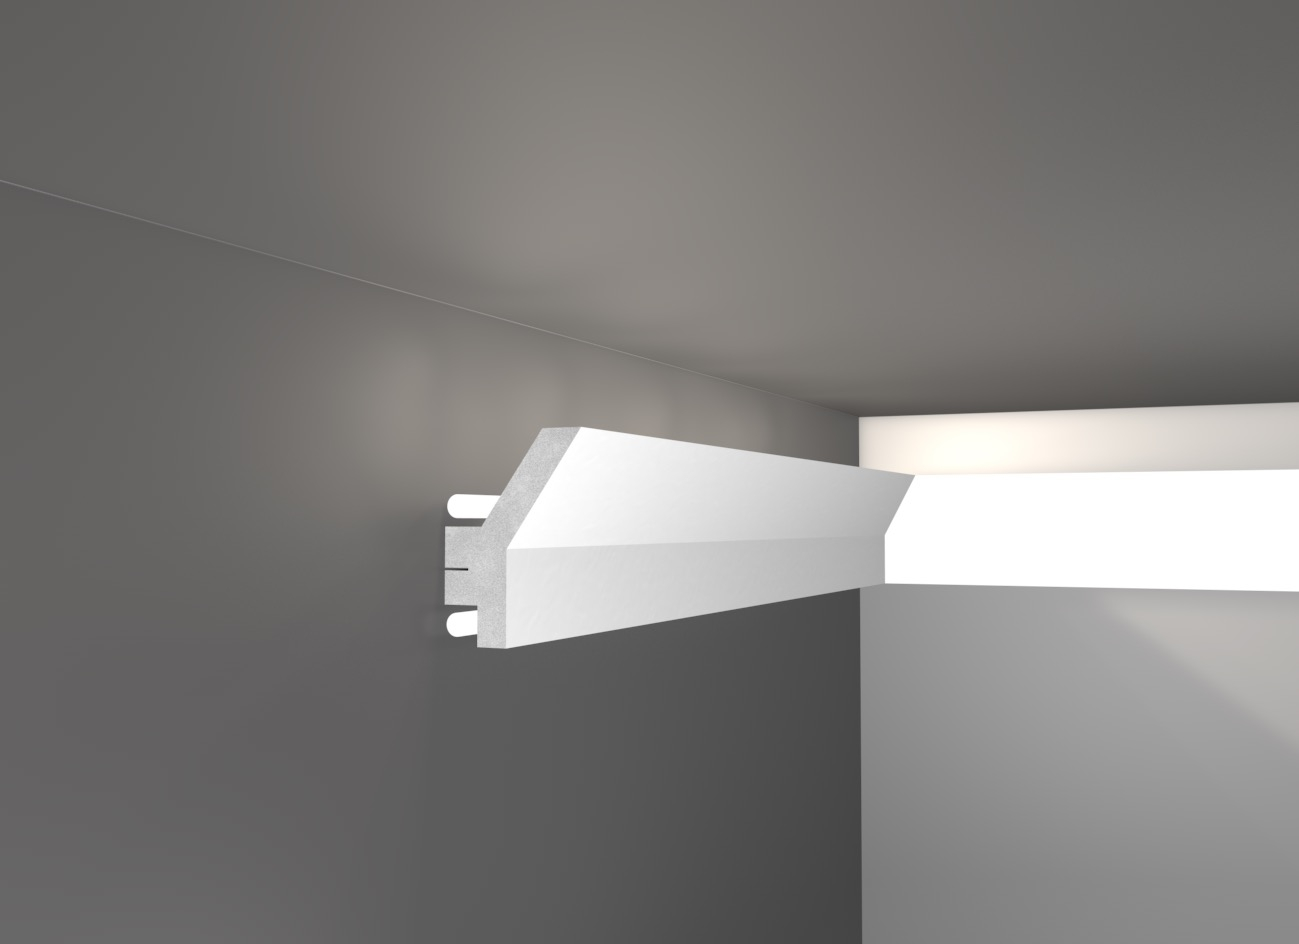 Led 7 veletta cornice in polistirene gessato bianco for Luci a tubo led